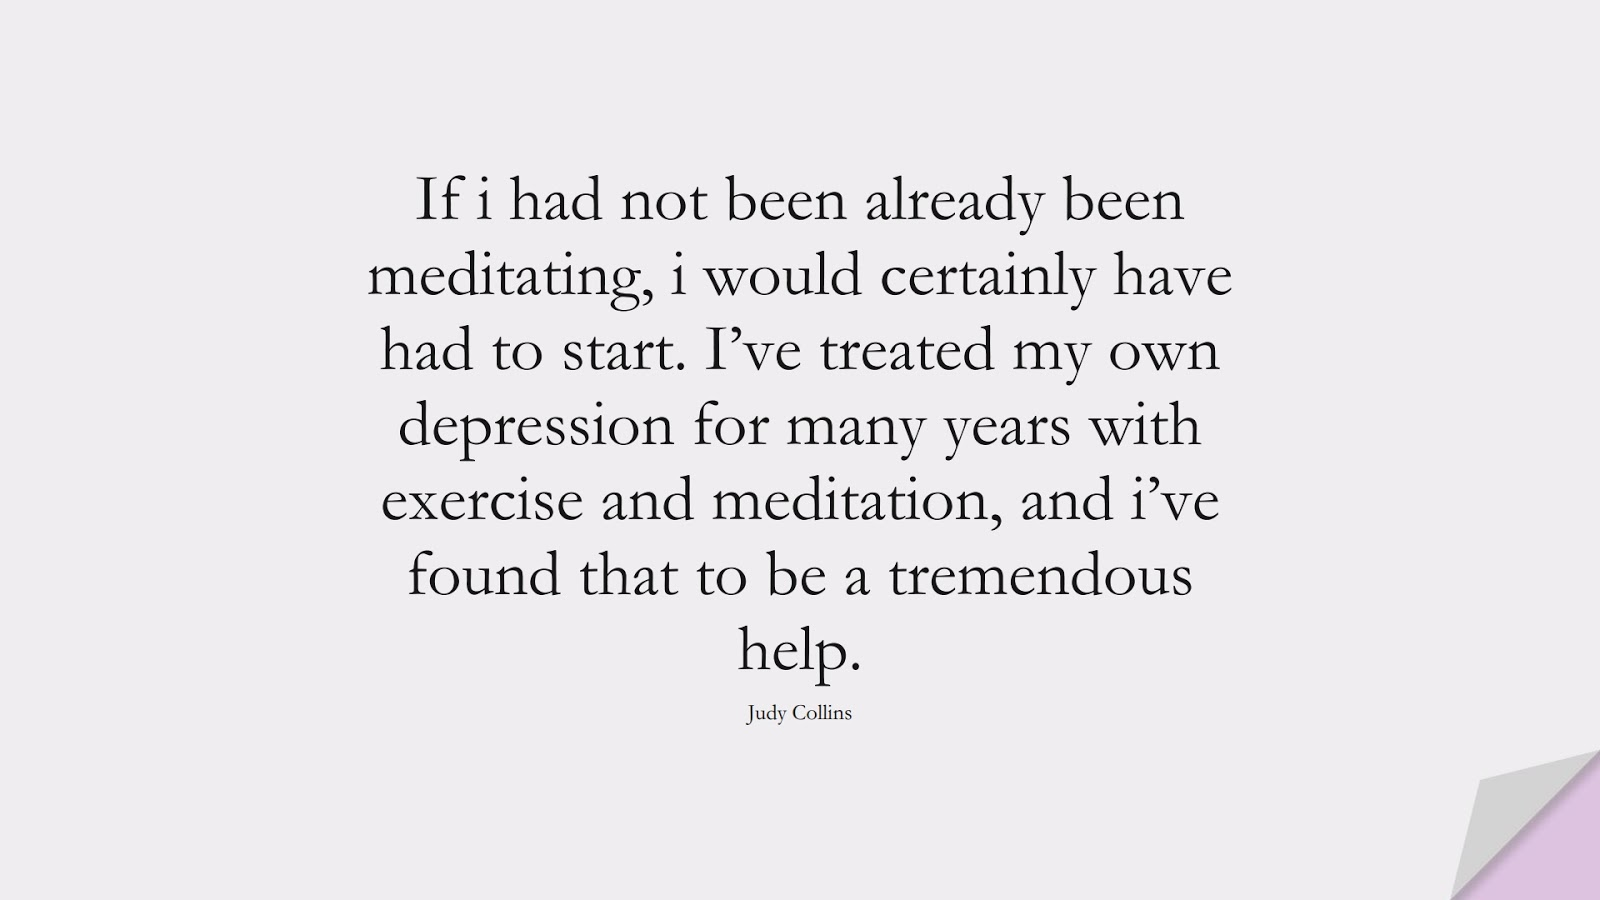 If i had not been already been meditating, i would certainly have had to start. I've treated my own depression for many years with exercise and meditation, and i've found that to be a tremendous help. (Judy Collins);  #HealthQuotes